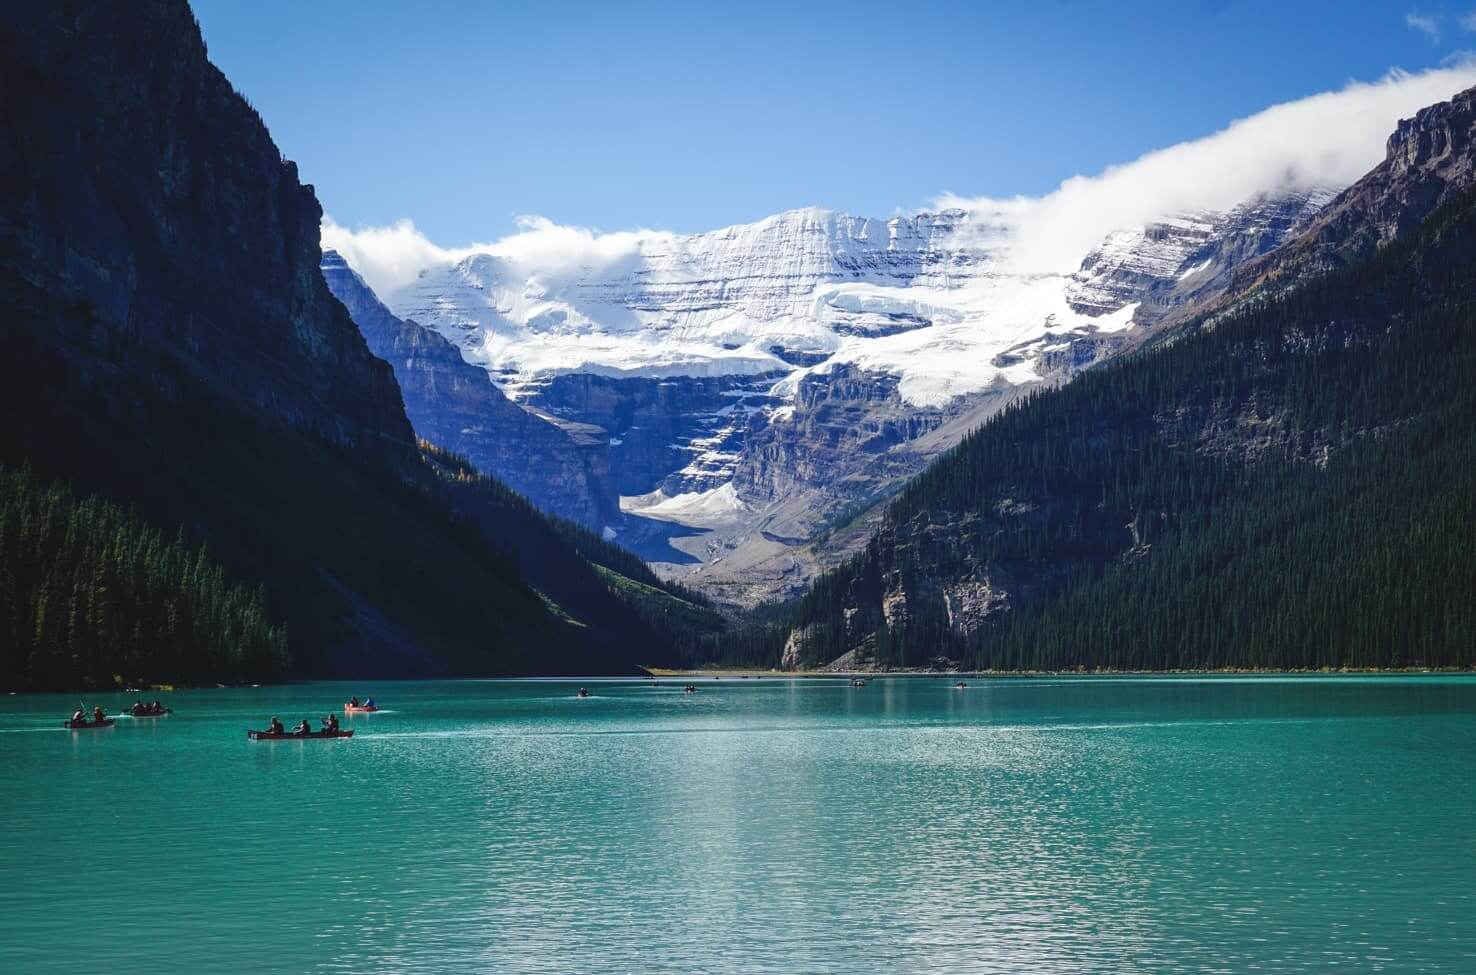 Canadian Rockies road trip itinerary - Lake Louise, Banff National Park